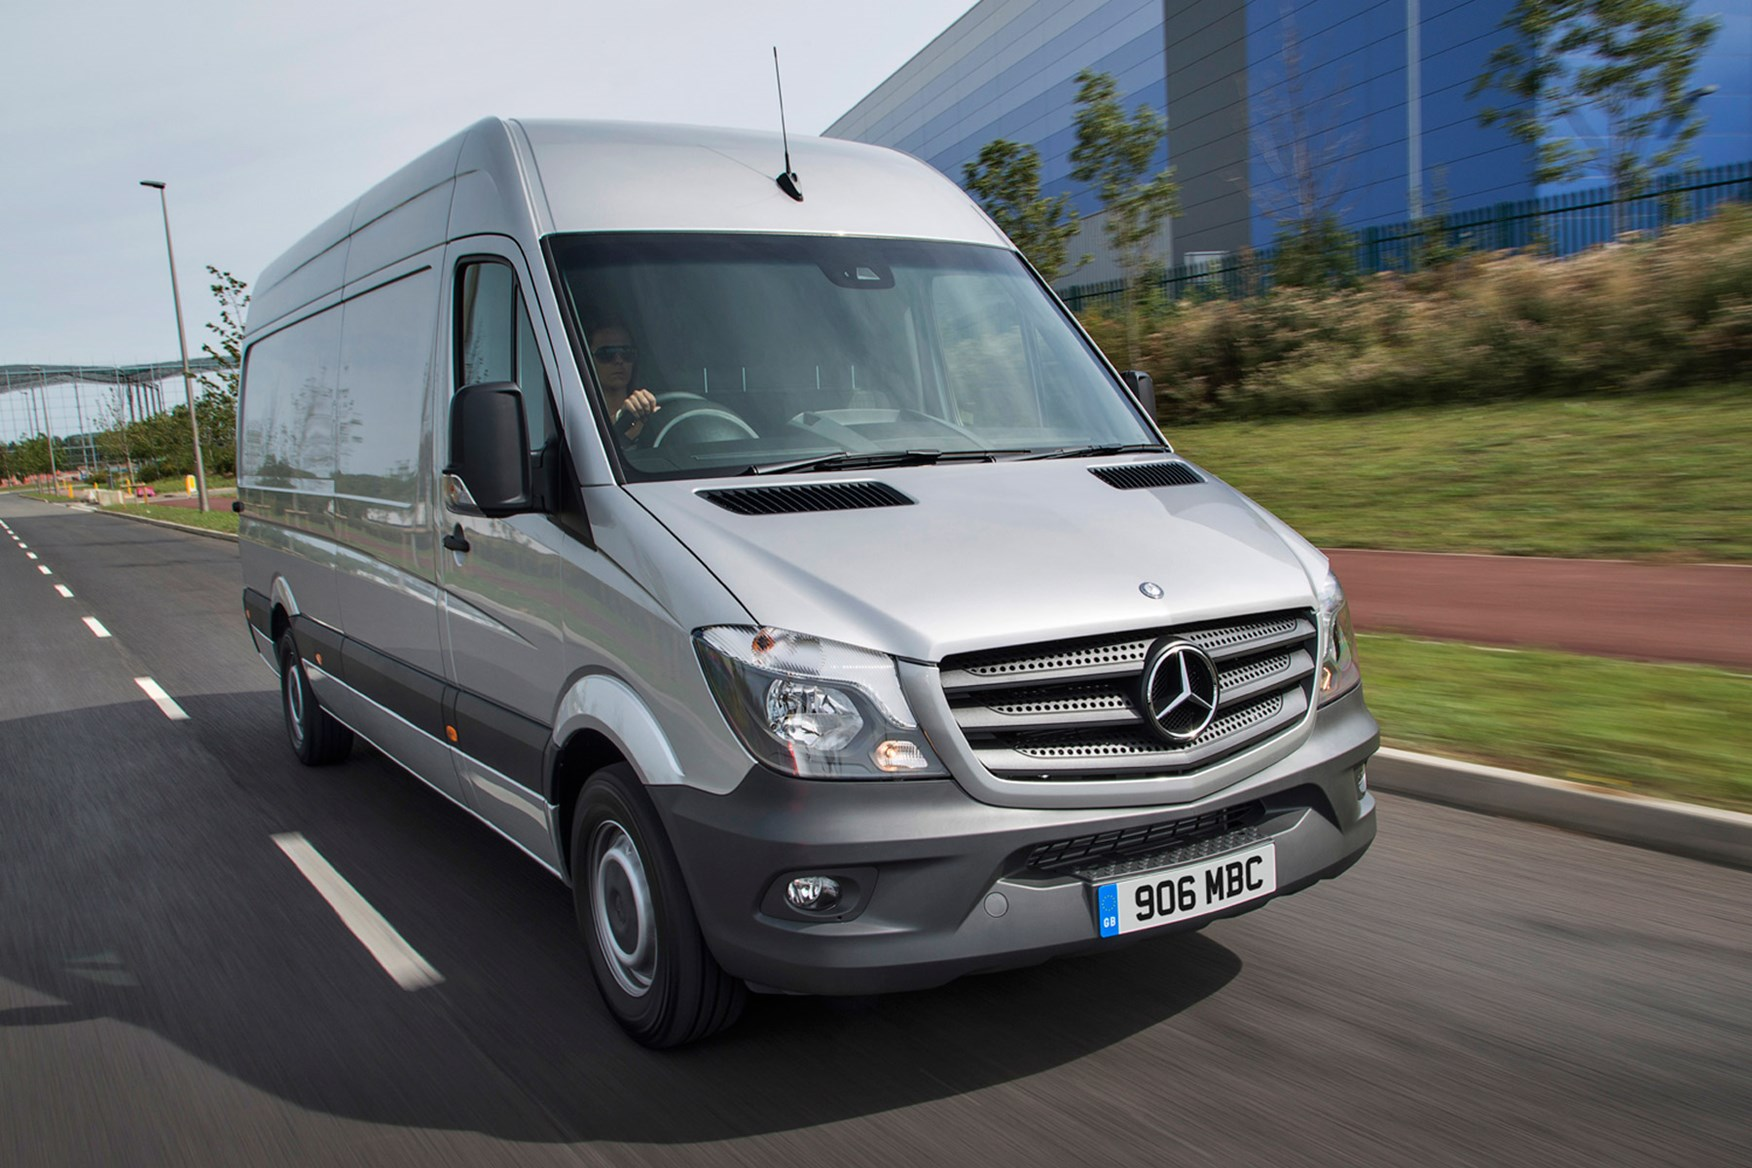 hight resolution of mercedes benz sprinter full review on parkers vans front exterior